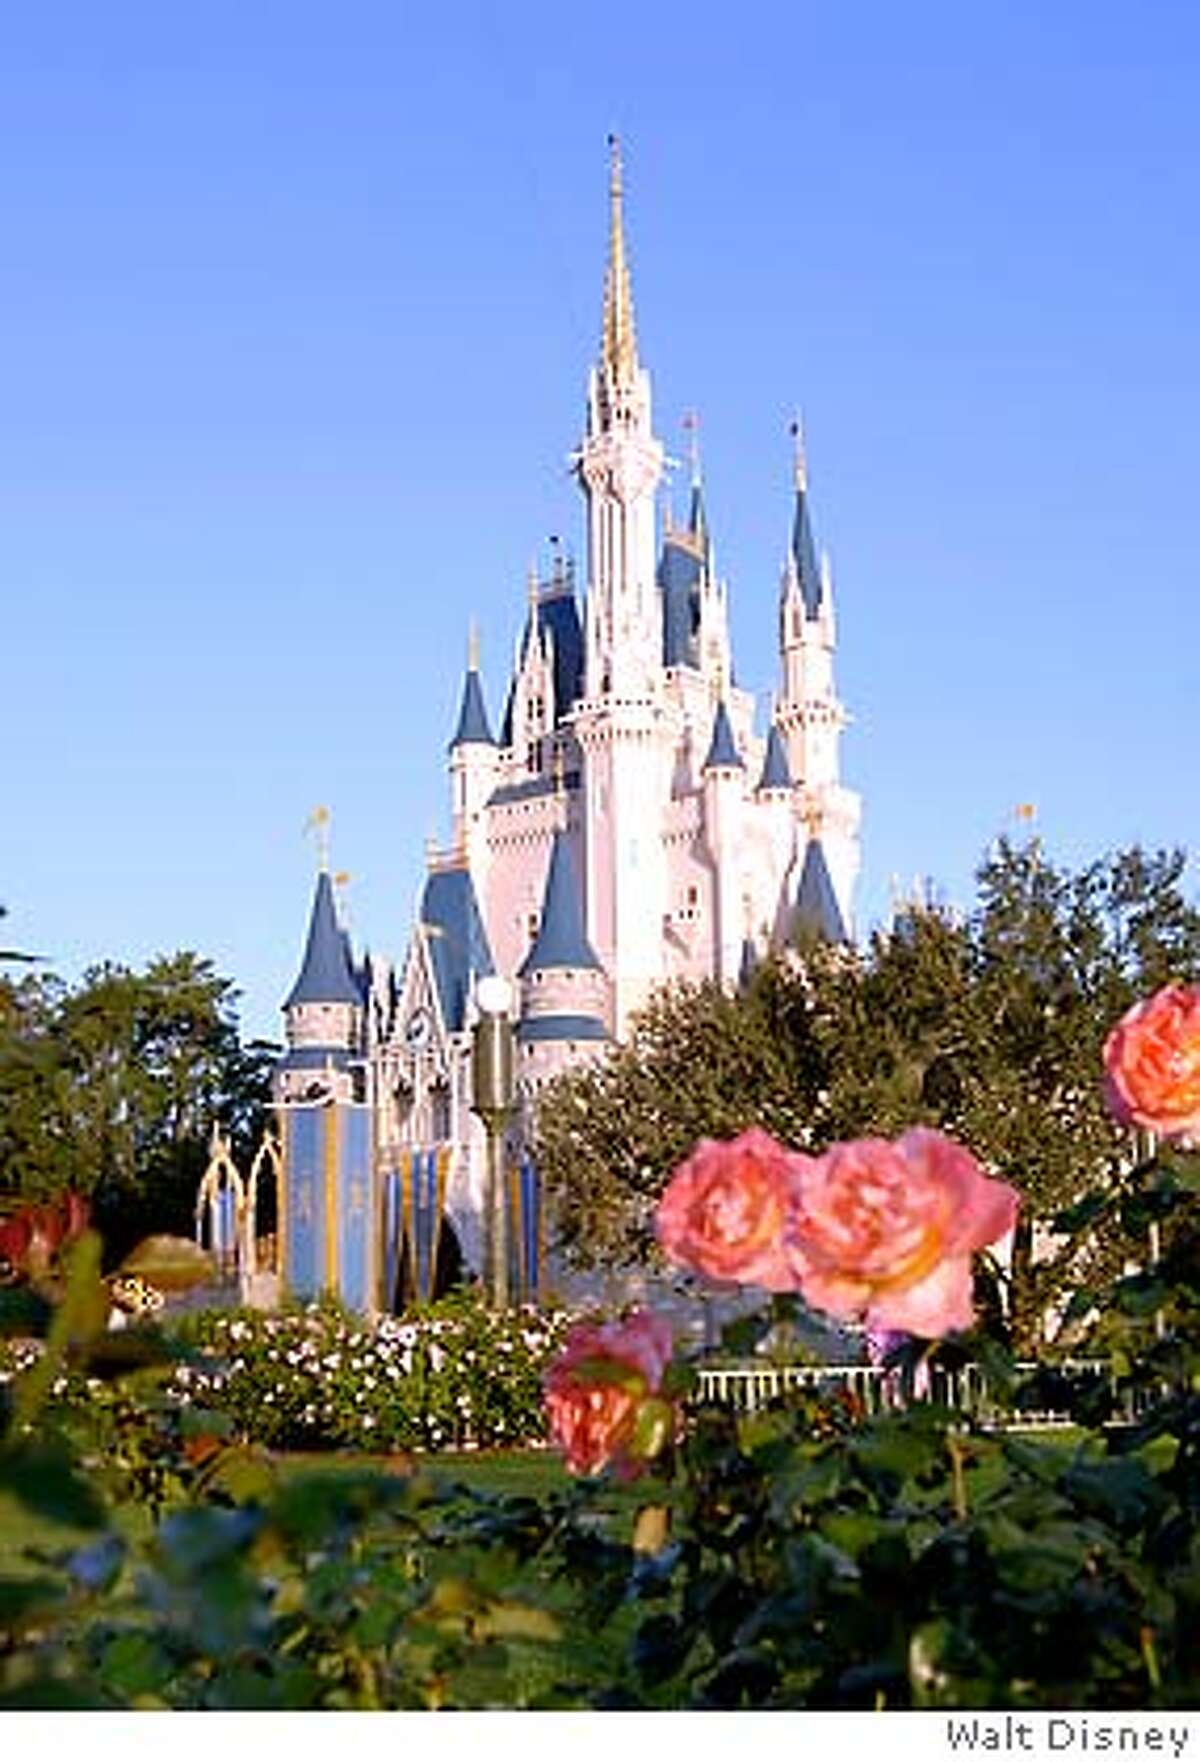 �TRAVEL DISNEY -- CASTLE SPIRES -- Colorful flowerbeds surround Cinderella Castle in the Magic Kingdom at Walt Disney World Resort. Rising 17 stories into the Florida sky, the structure serves as a landmark for park visitors and provides an entryway into Fantasyland.